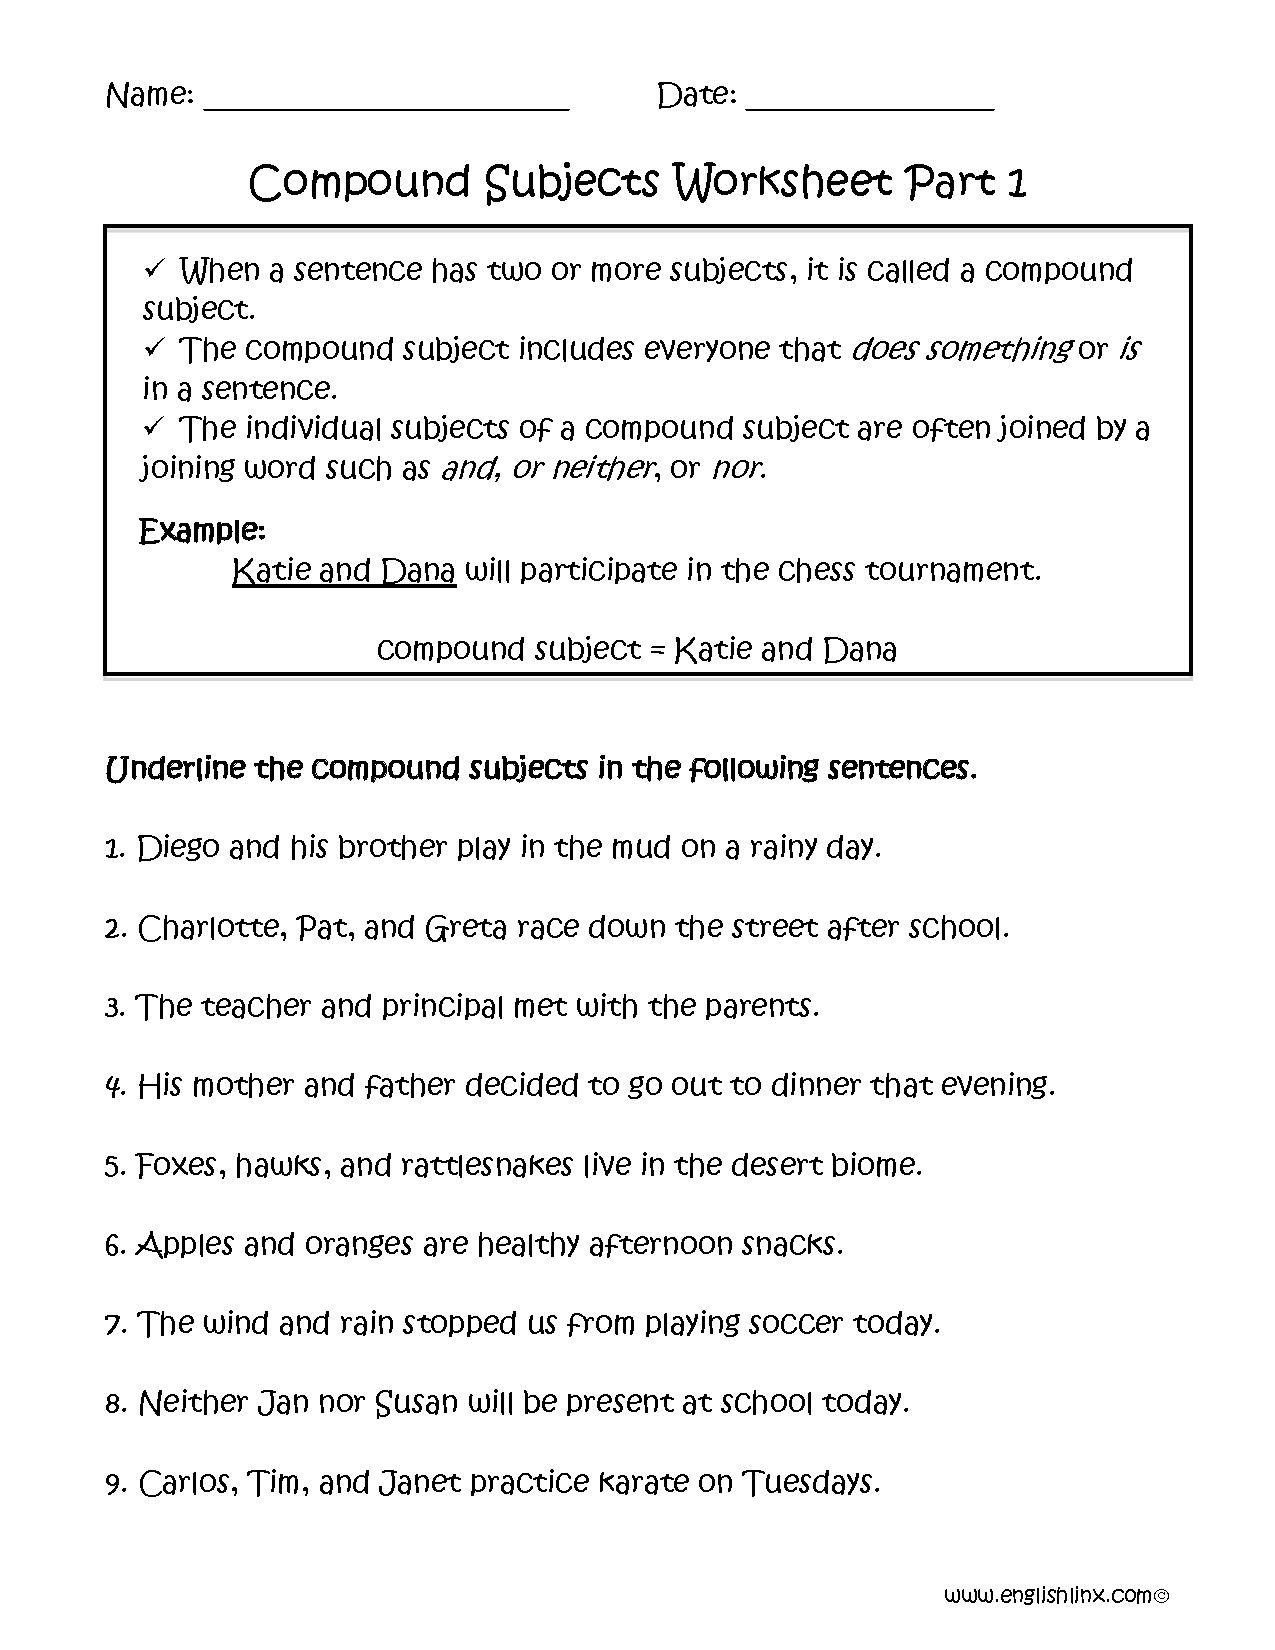 Uncategorized Compound Events Worksheet compound subject worksheet part 1 grammar pinterest 1